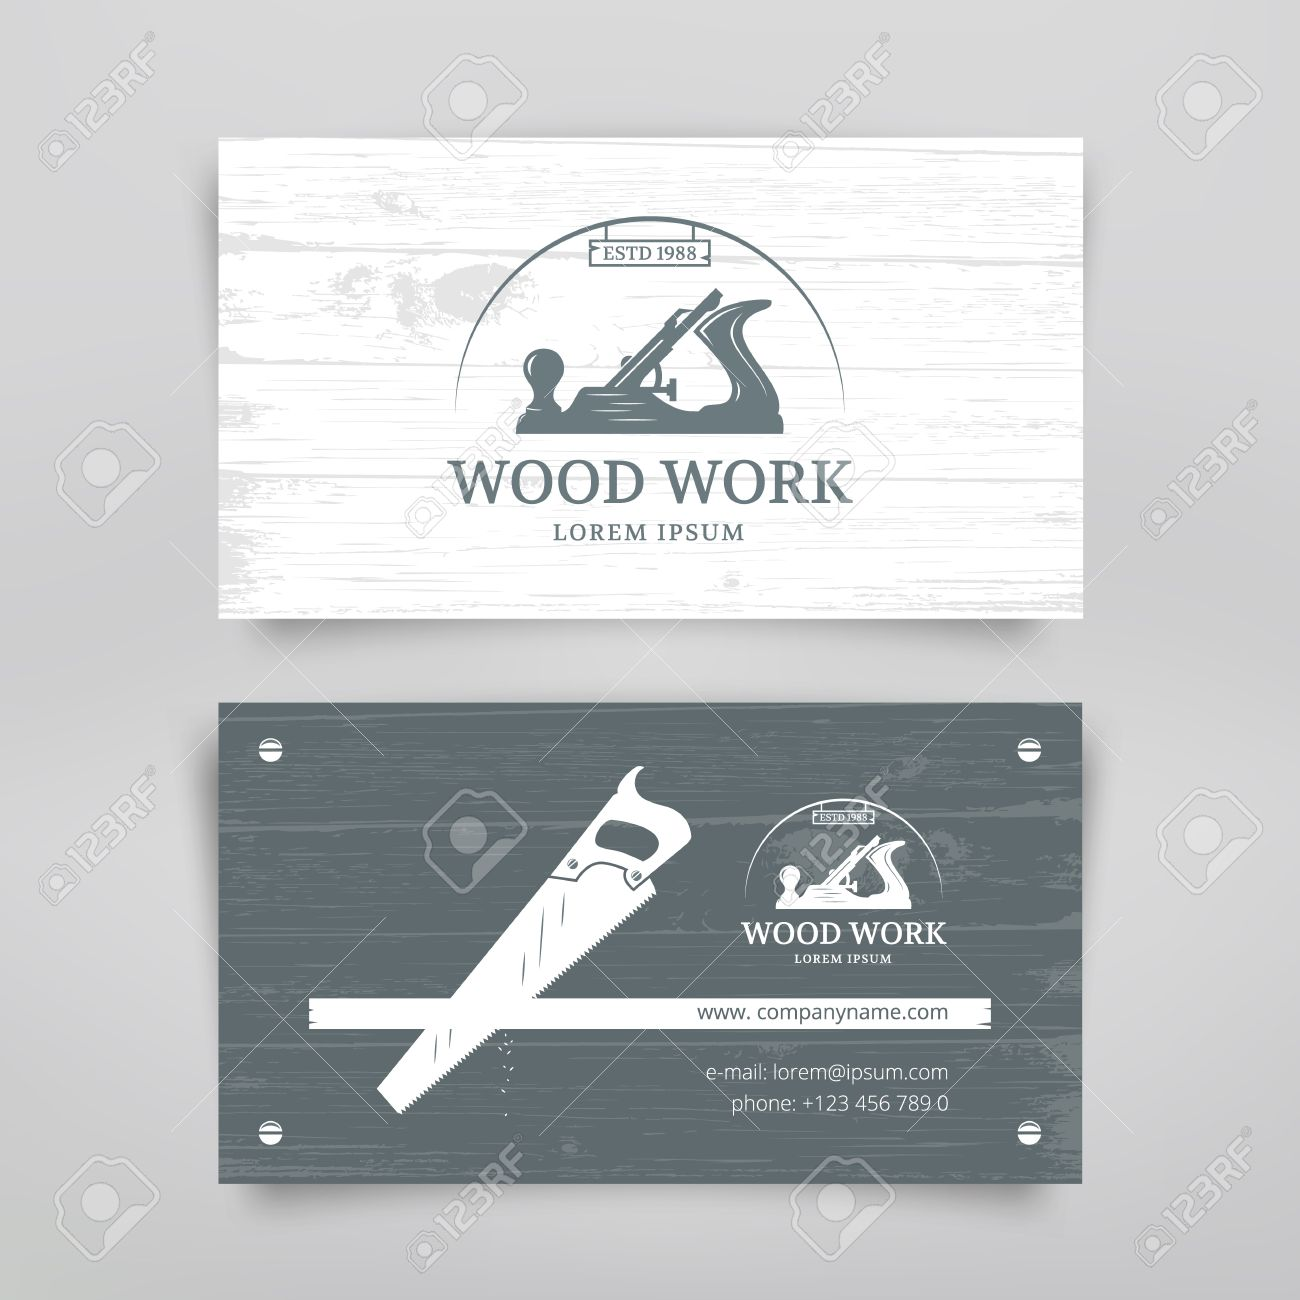 Woodwork vintage style business card design template carpentry vector woodwork vintage style business card design template carpentry tools vector cheaphphosting Gallery